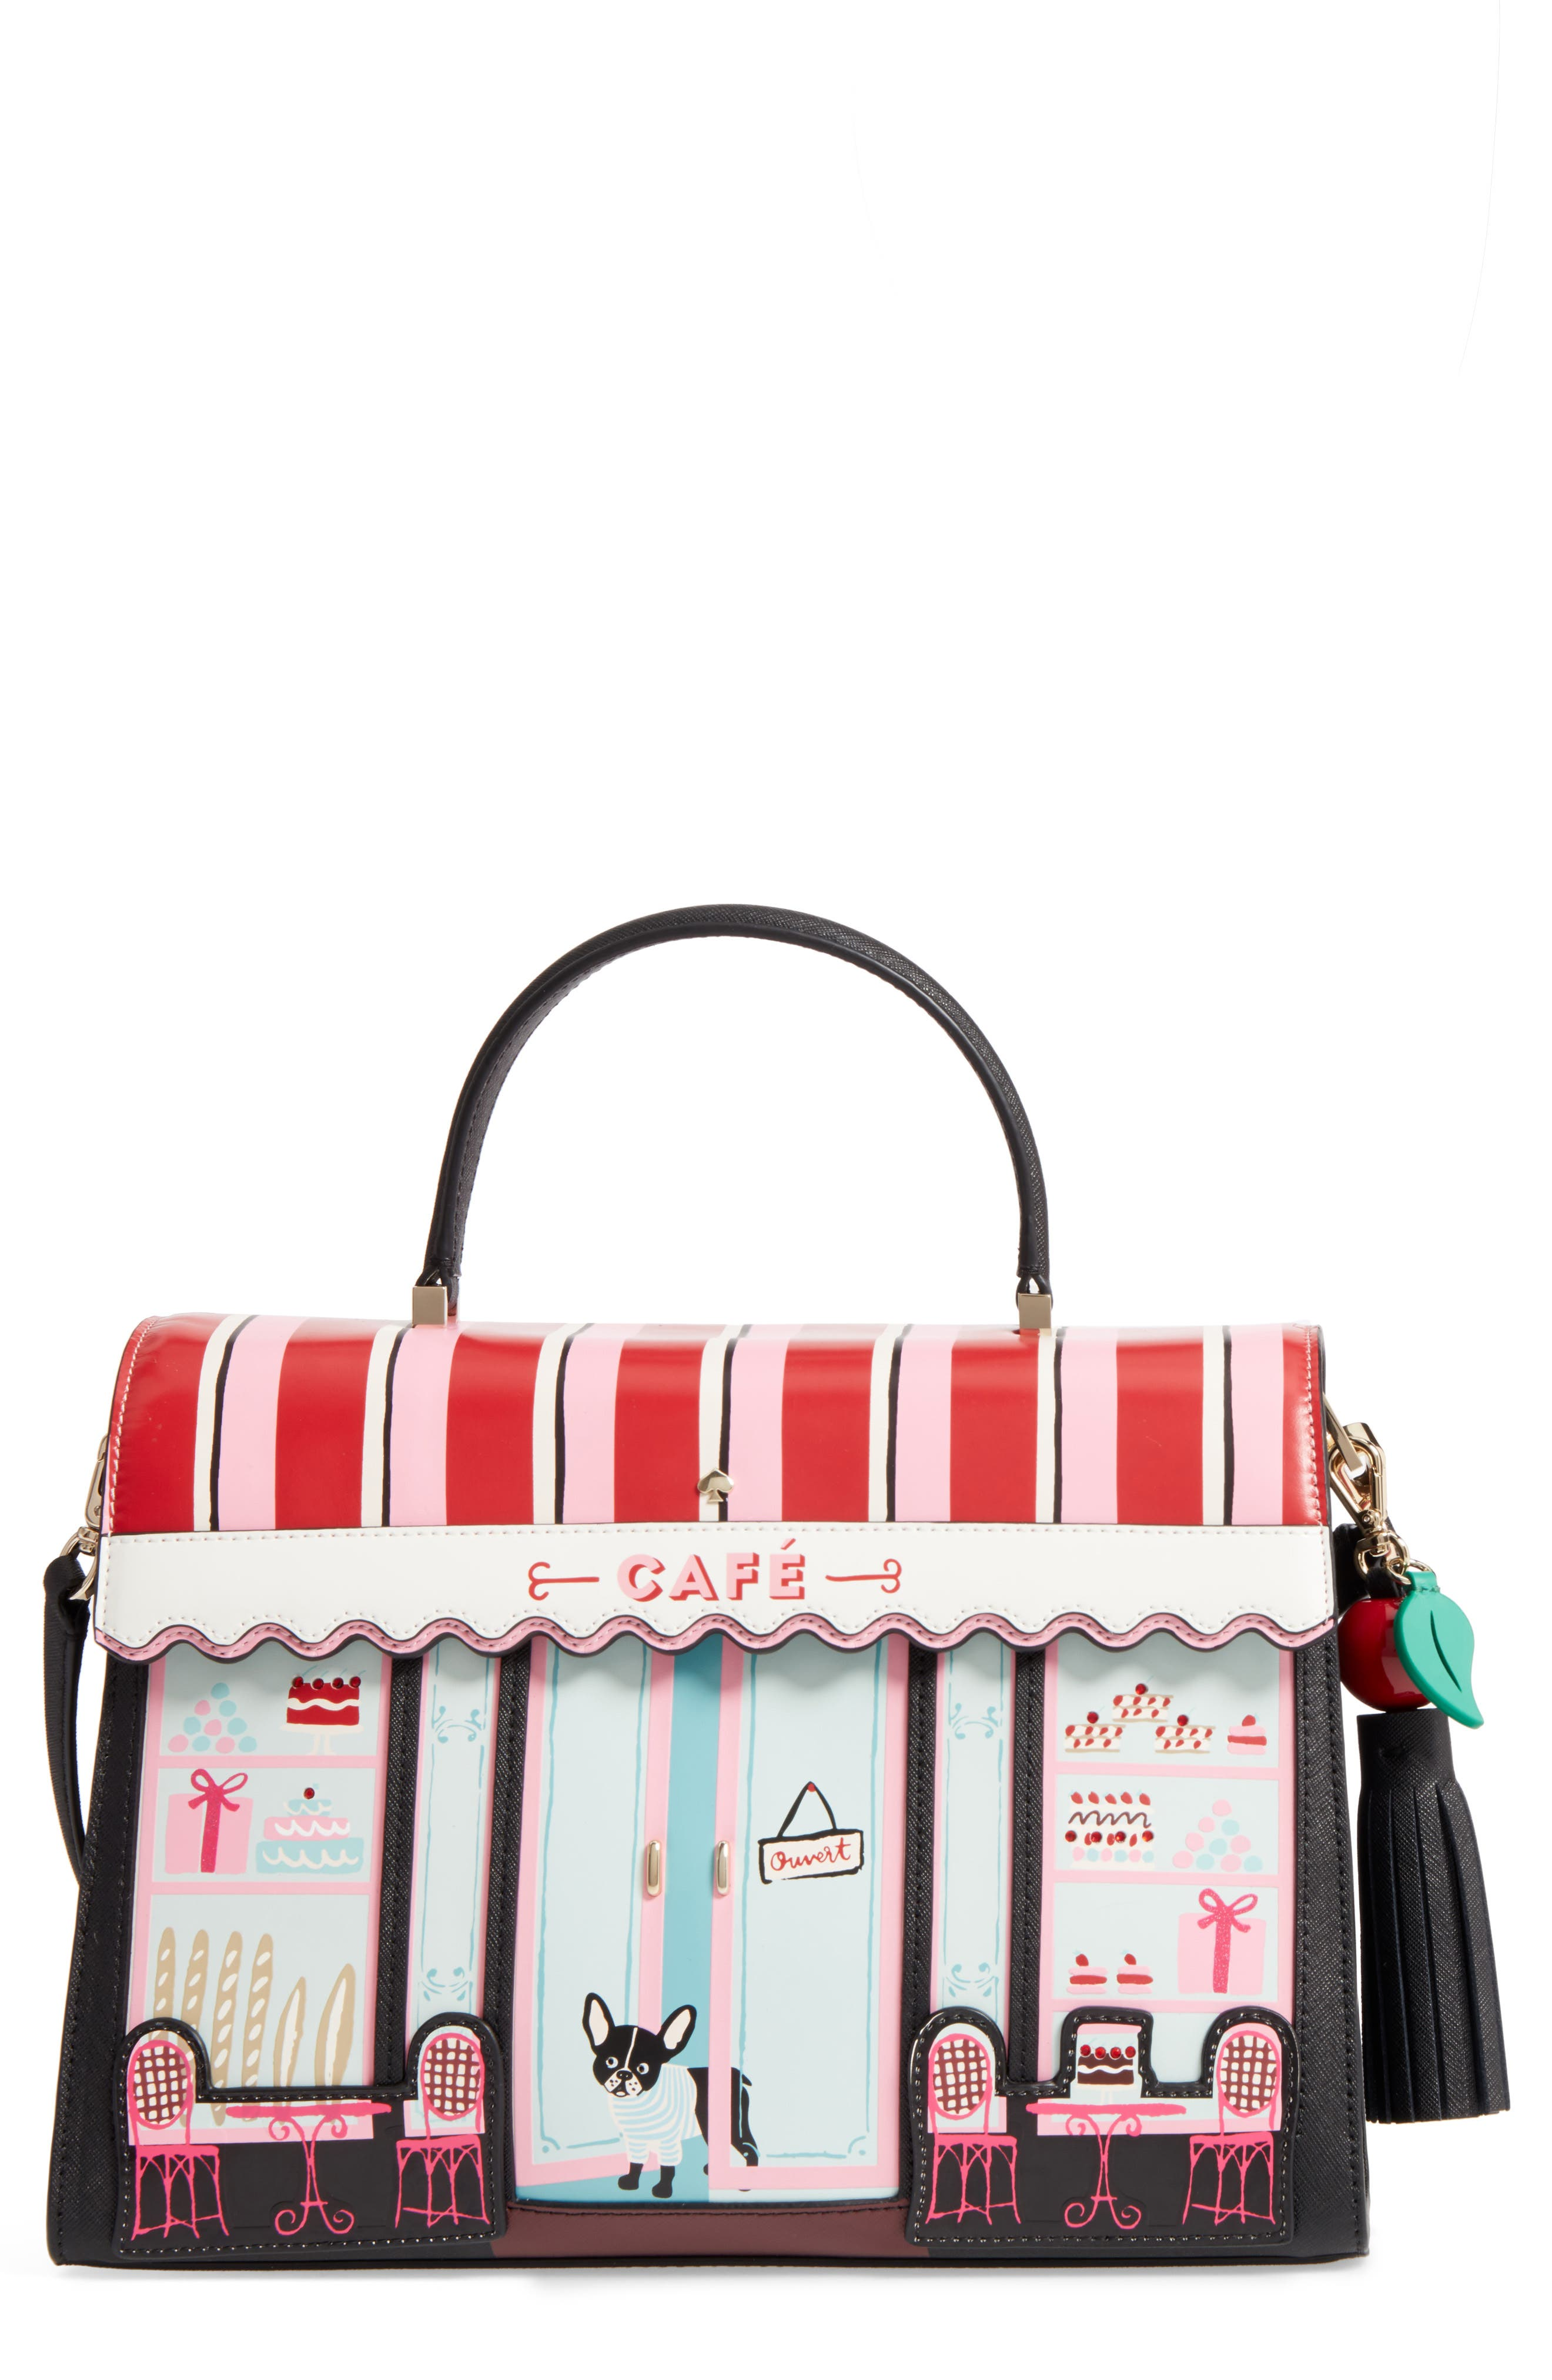 KATE SPADE NEW YORK,                             ma cherie - café leather satchel,                             Main thumbnail 1, color,                             001